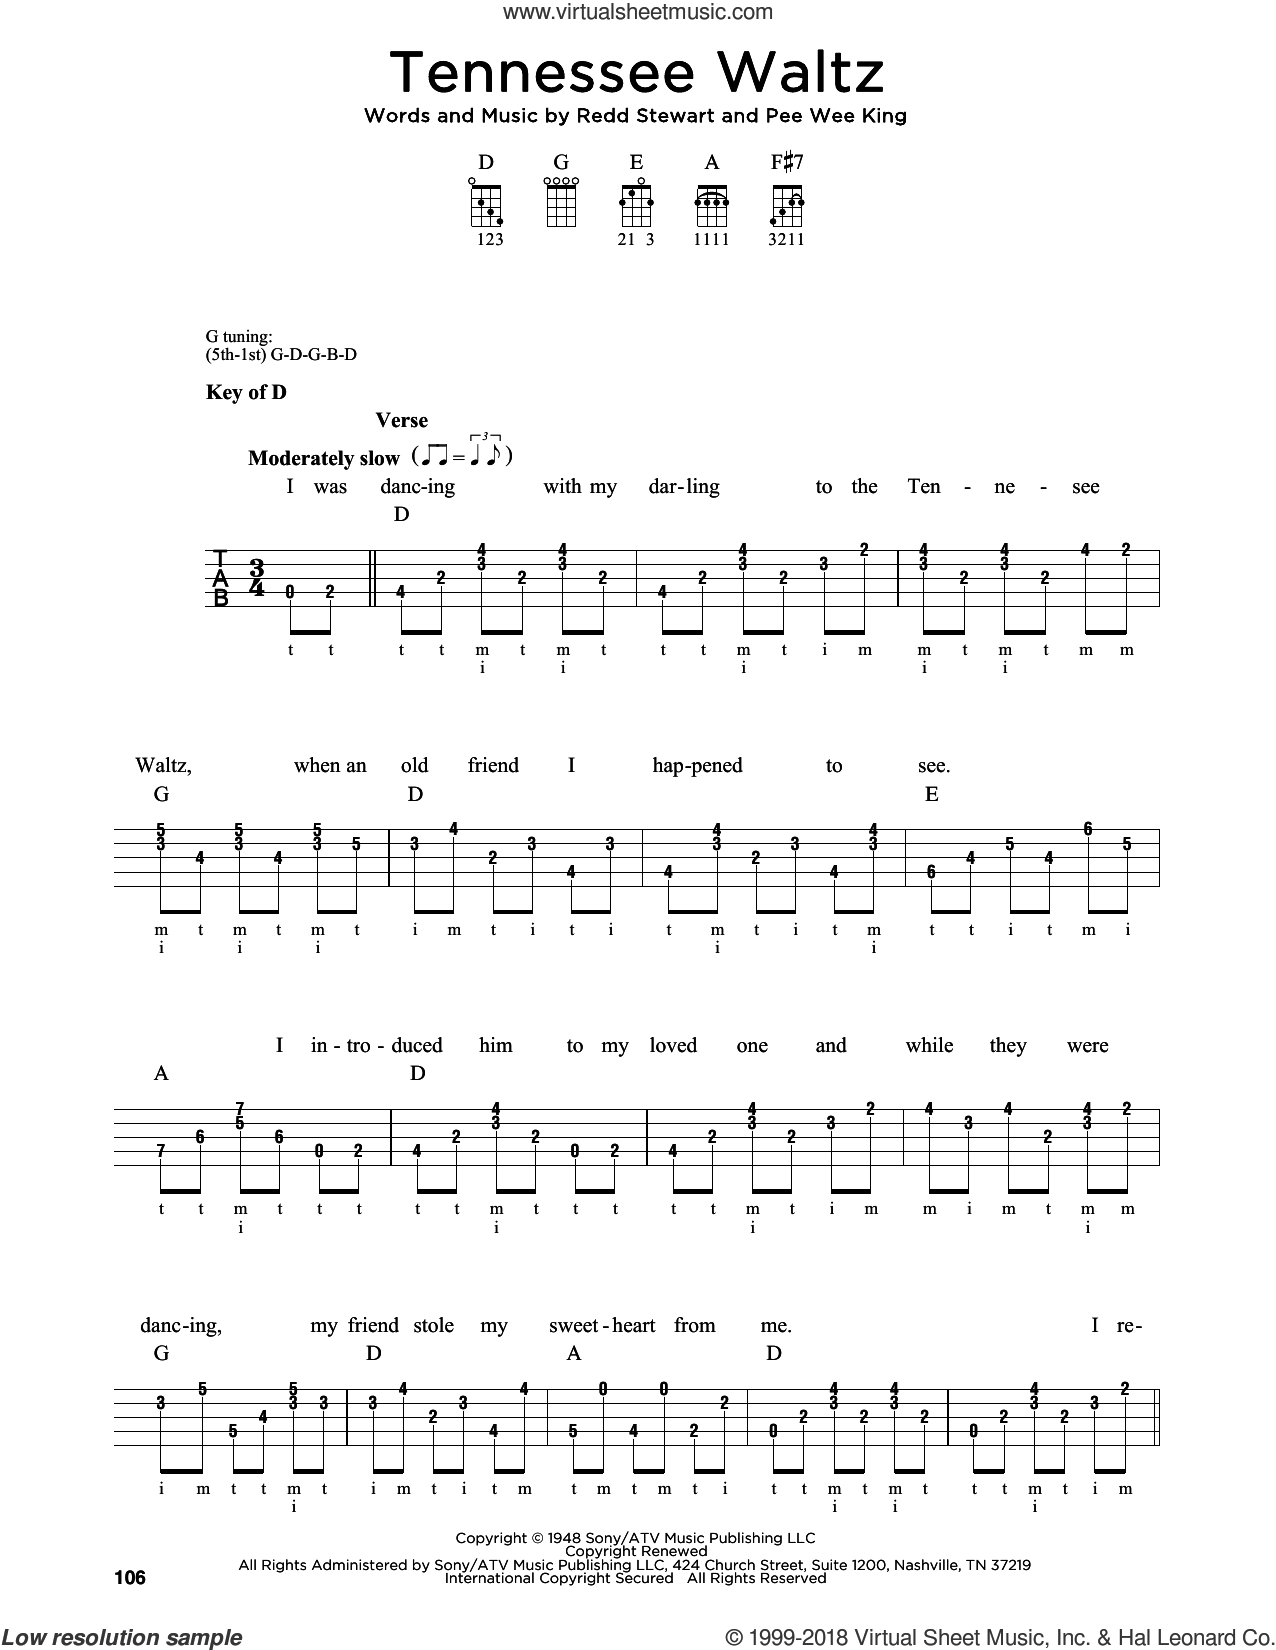 Tennessee Waltz sheet music for banjo solo by Pee Wee King, Greg Cahill, Michael J. Miles, Patti Page, Patty Page and Redd Stewart, intermediate skill level